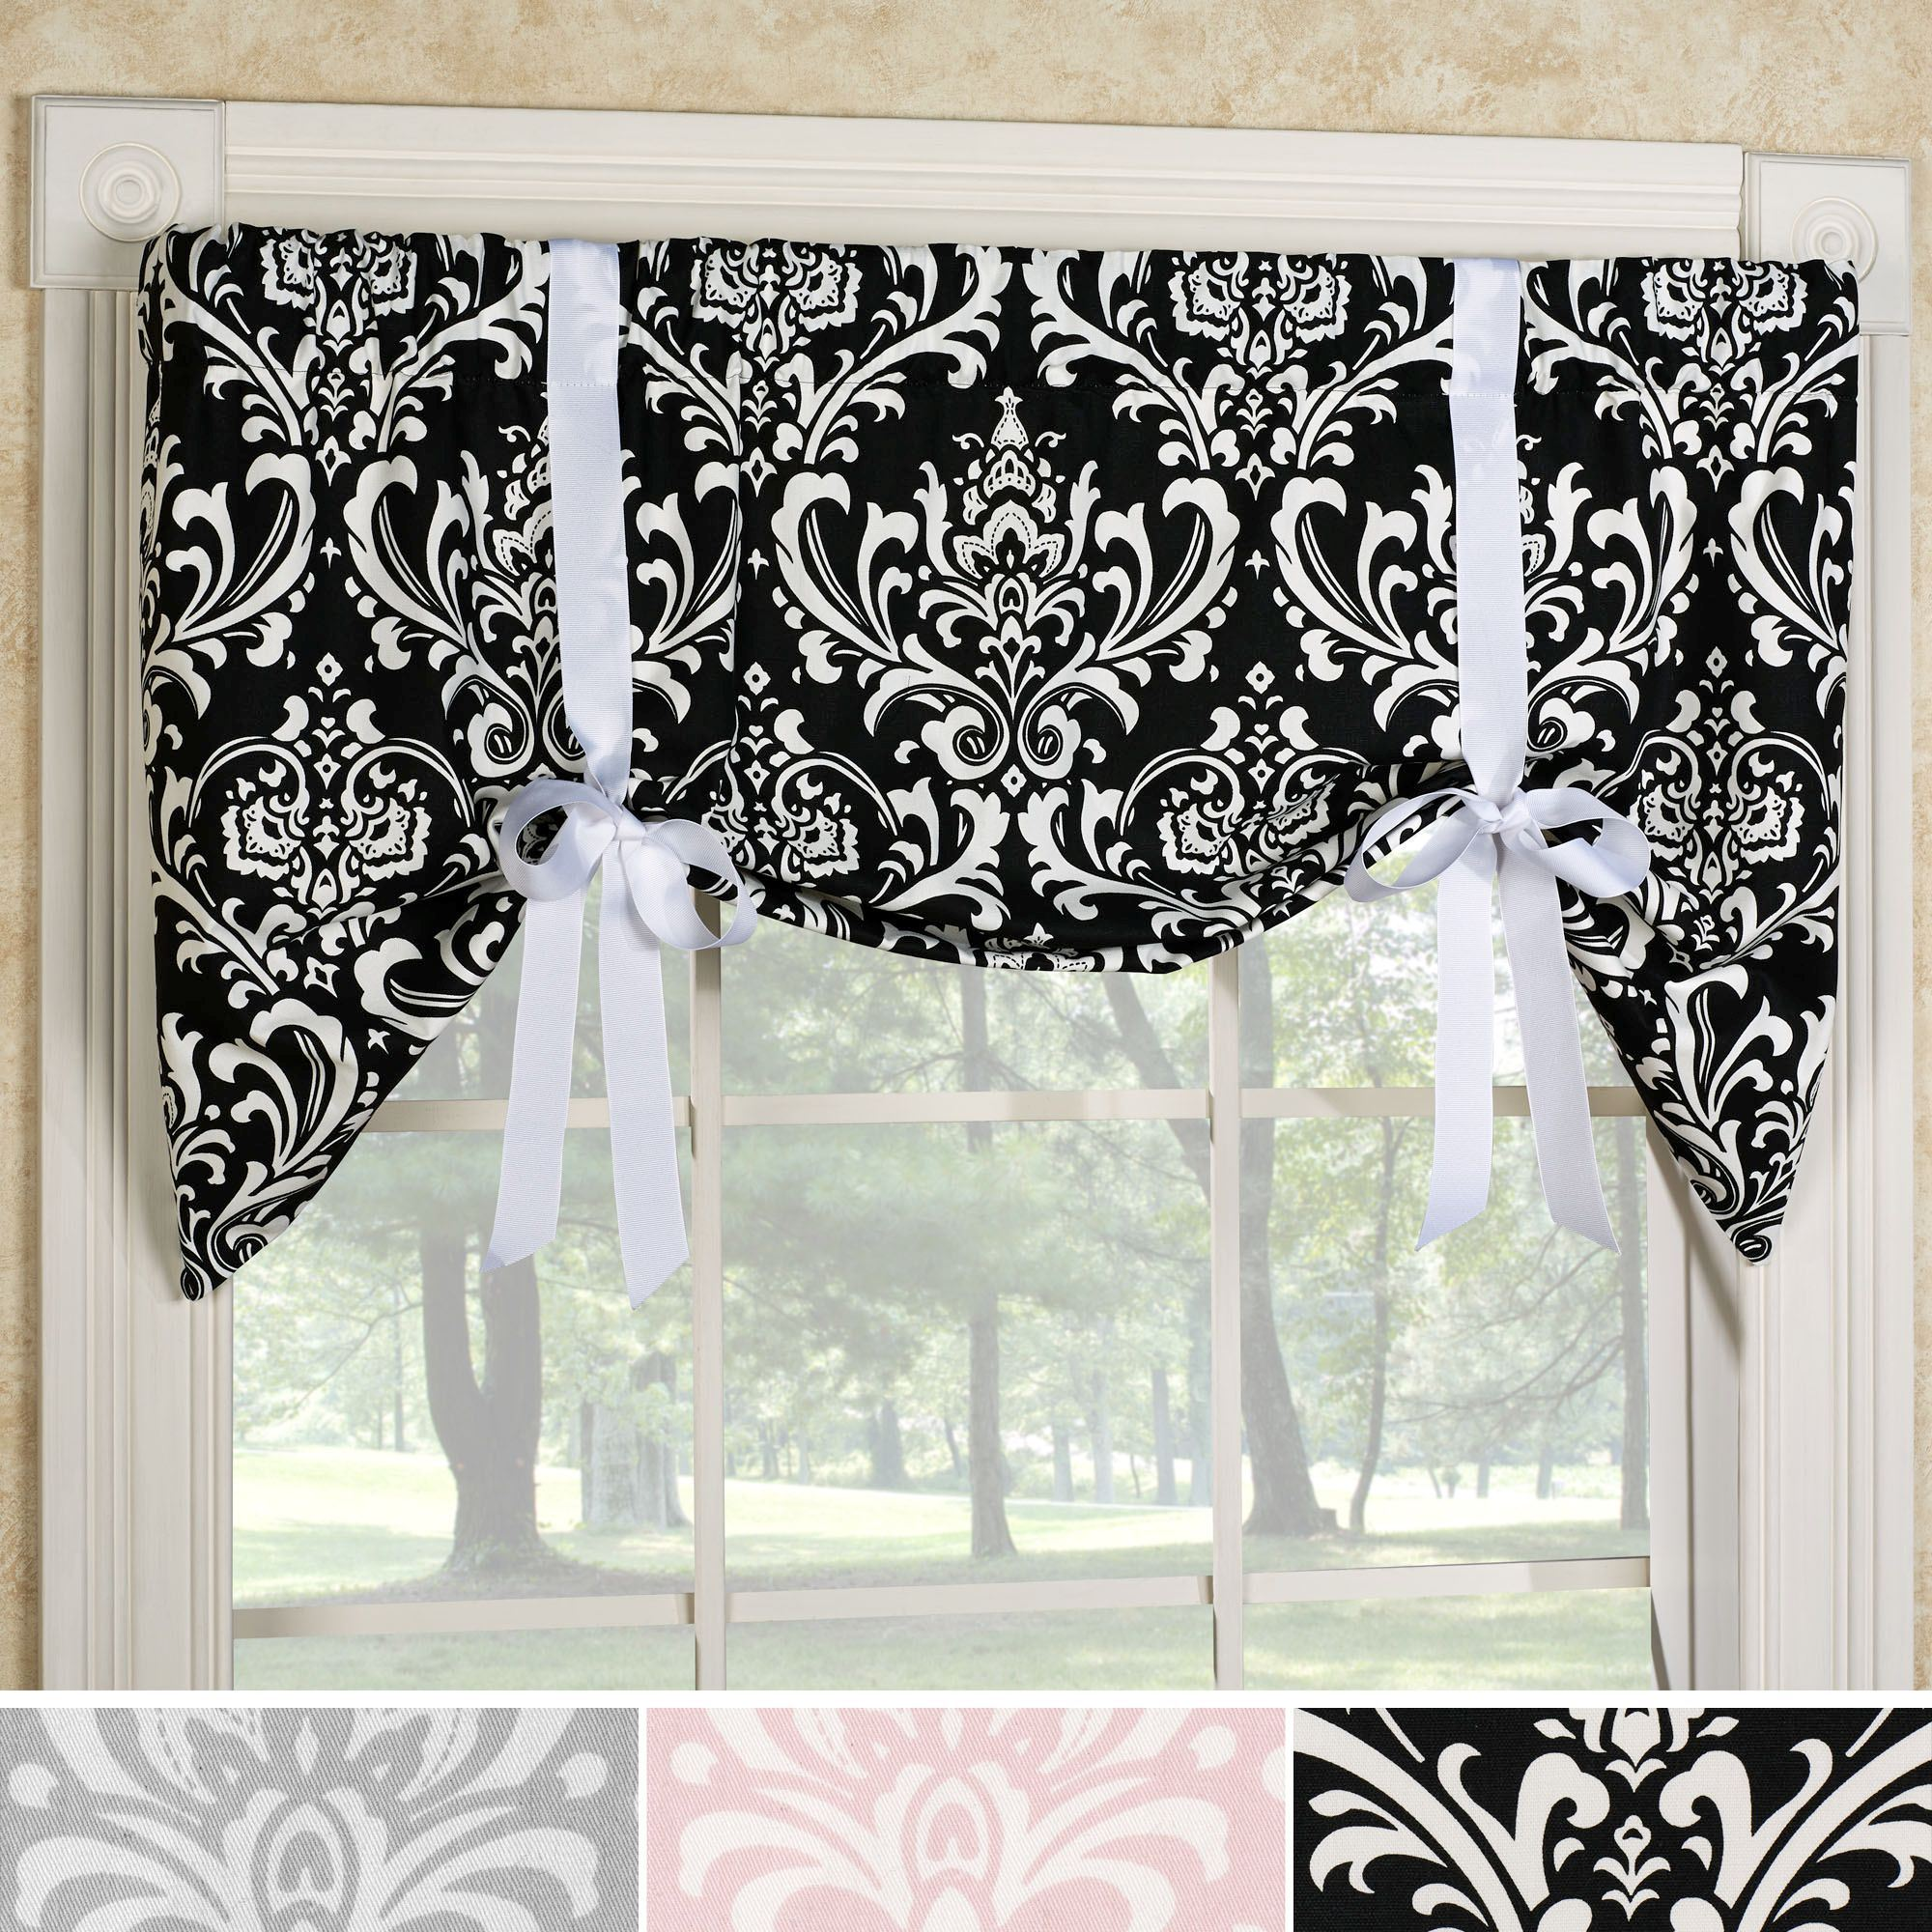 kitchen patterns curtains treatments to bay and of valances lovely ideas tar curtain window for modern windows awesome treatment valance back post